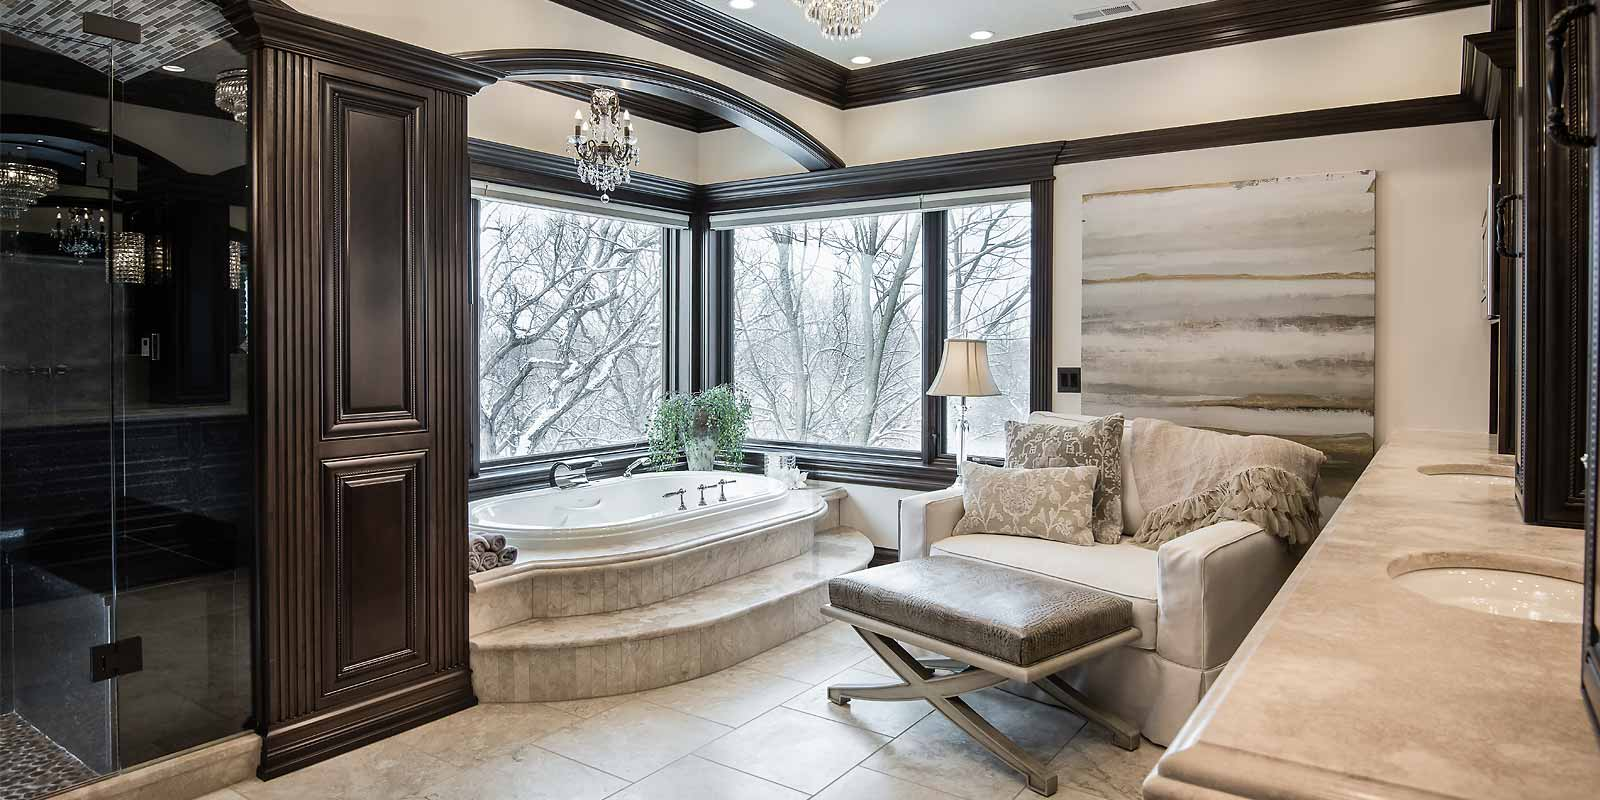 Silent Rivers Design Build Custom Homes & Remodeling Des Moines